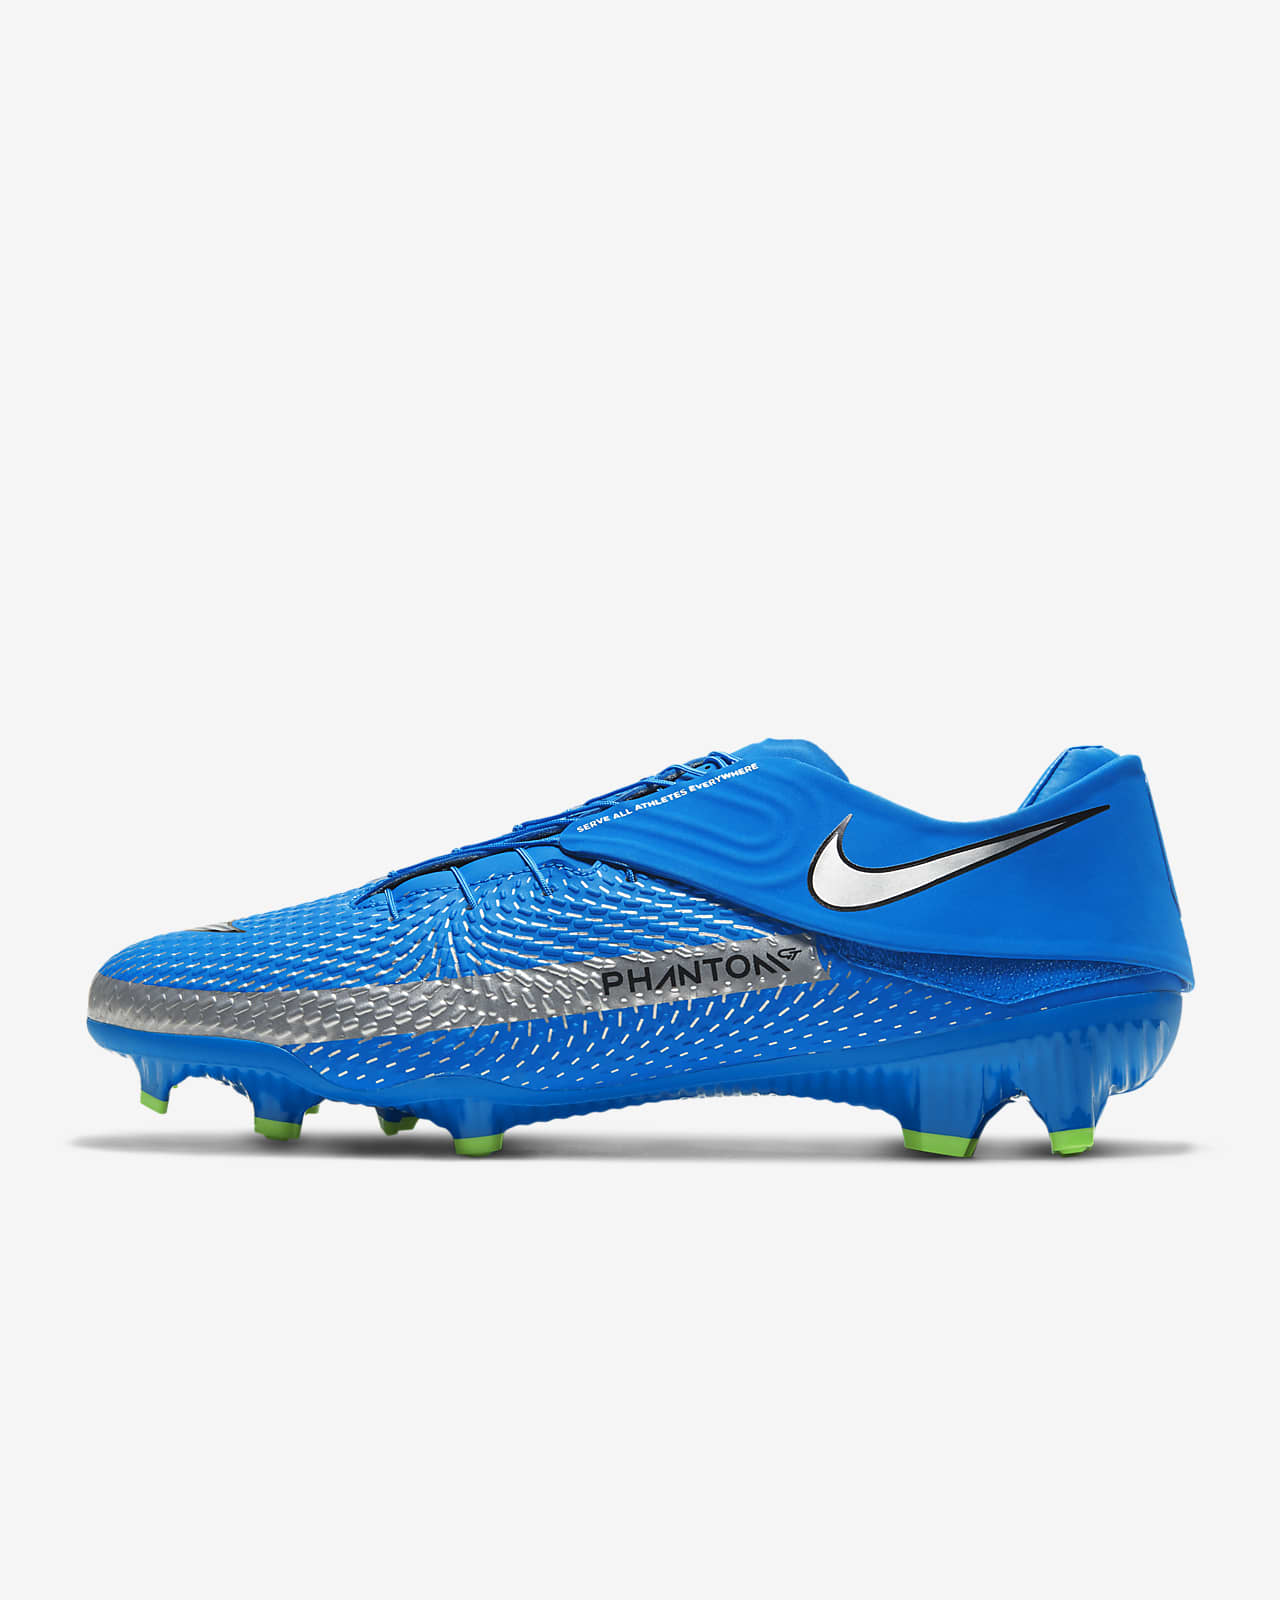 Scarpa da calcio multiterreno Nike Phantom GT Academy FlyEase MG